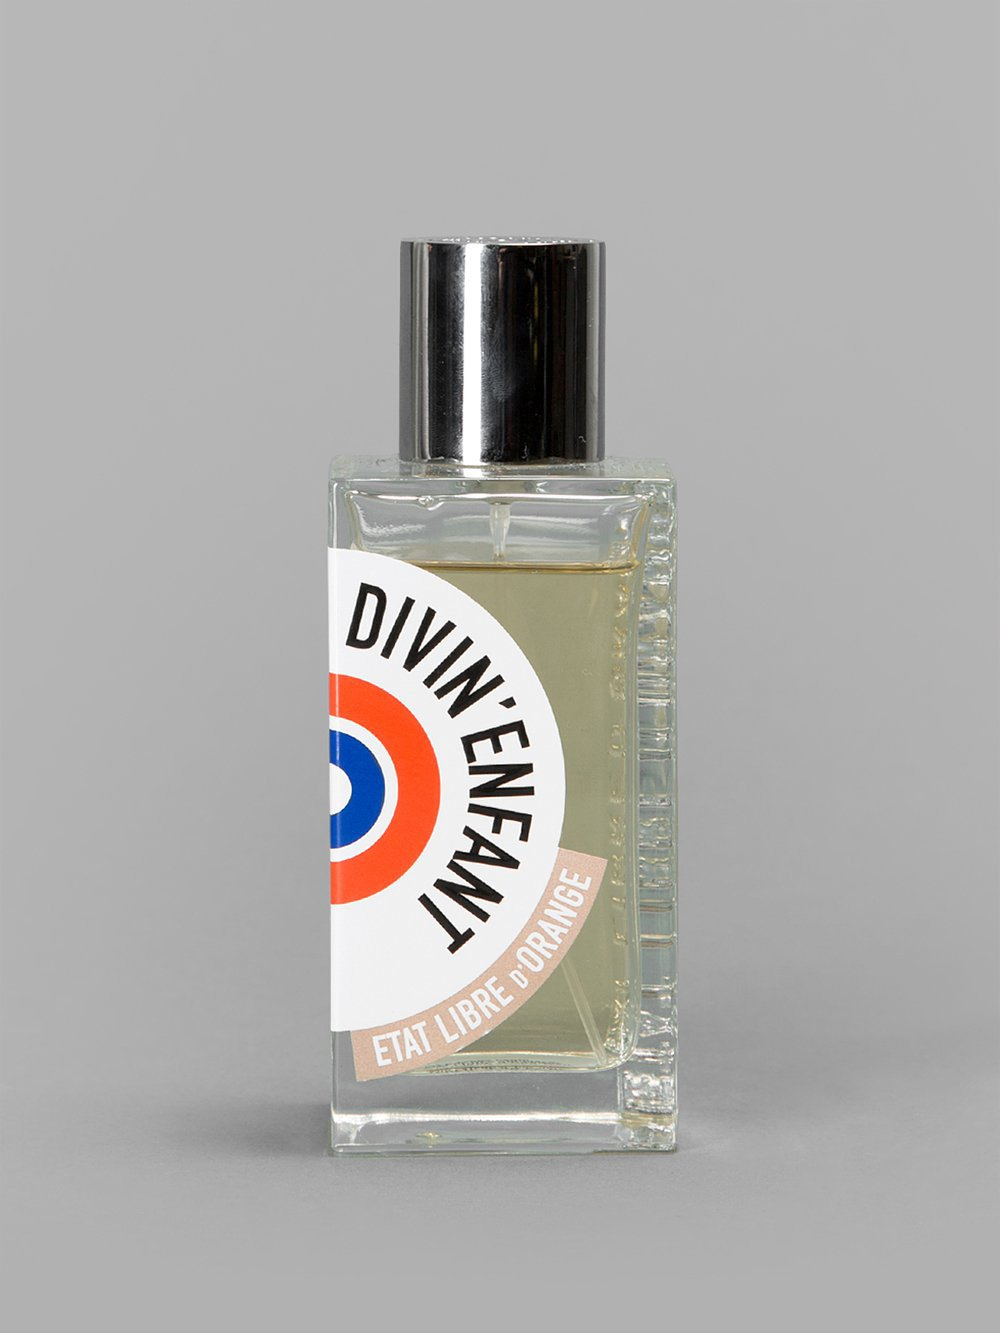 ETAT LIBRE D'ORANGE DIVIN'ENFANT 50 ML SPRAY